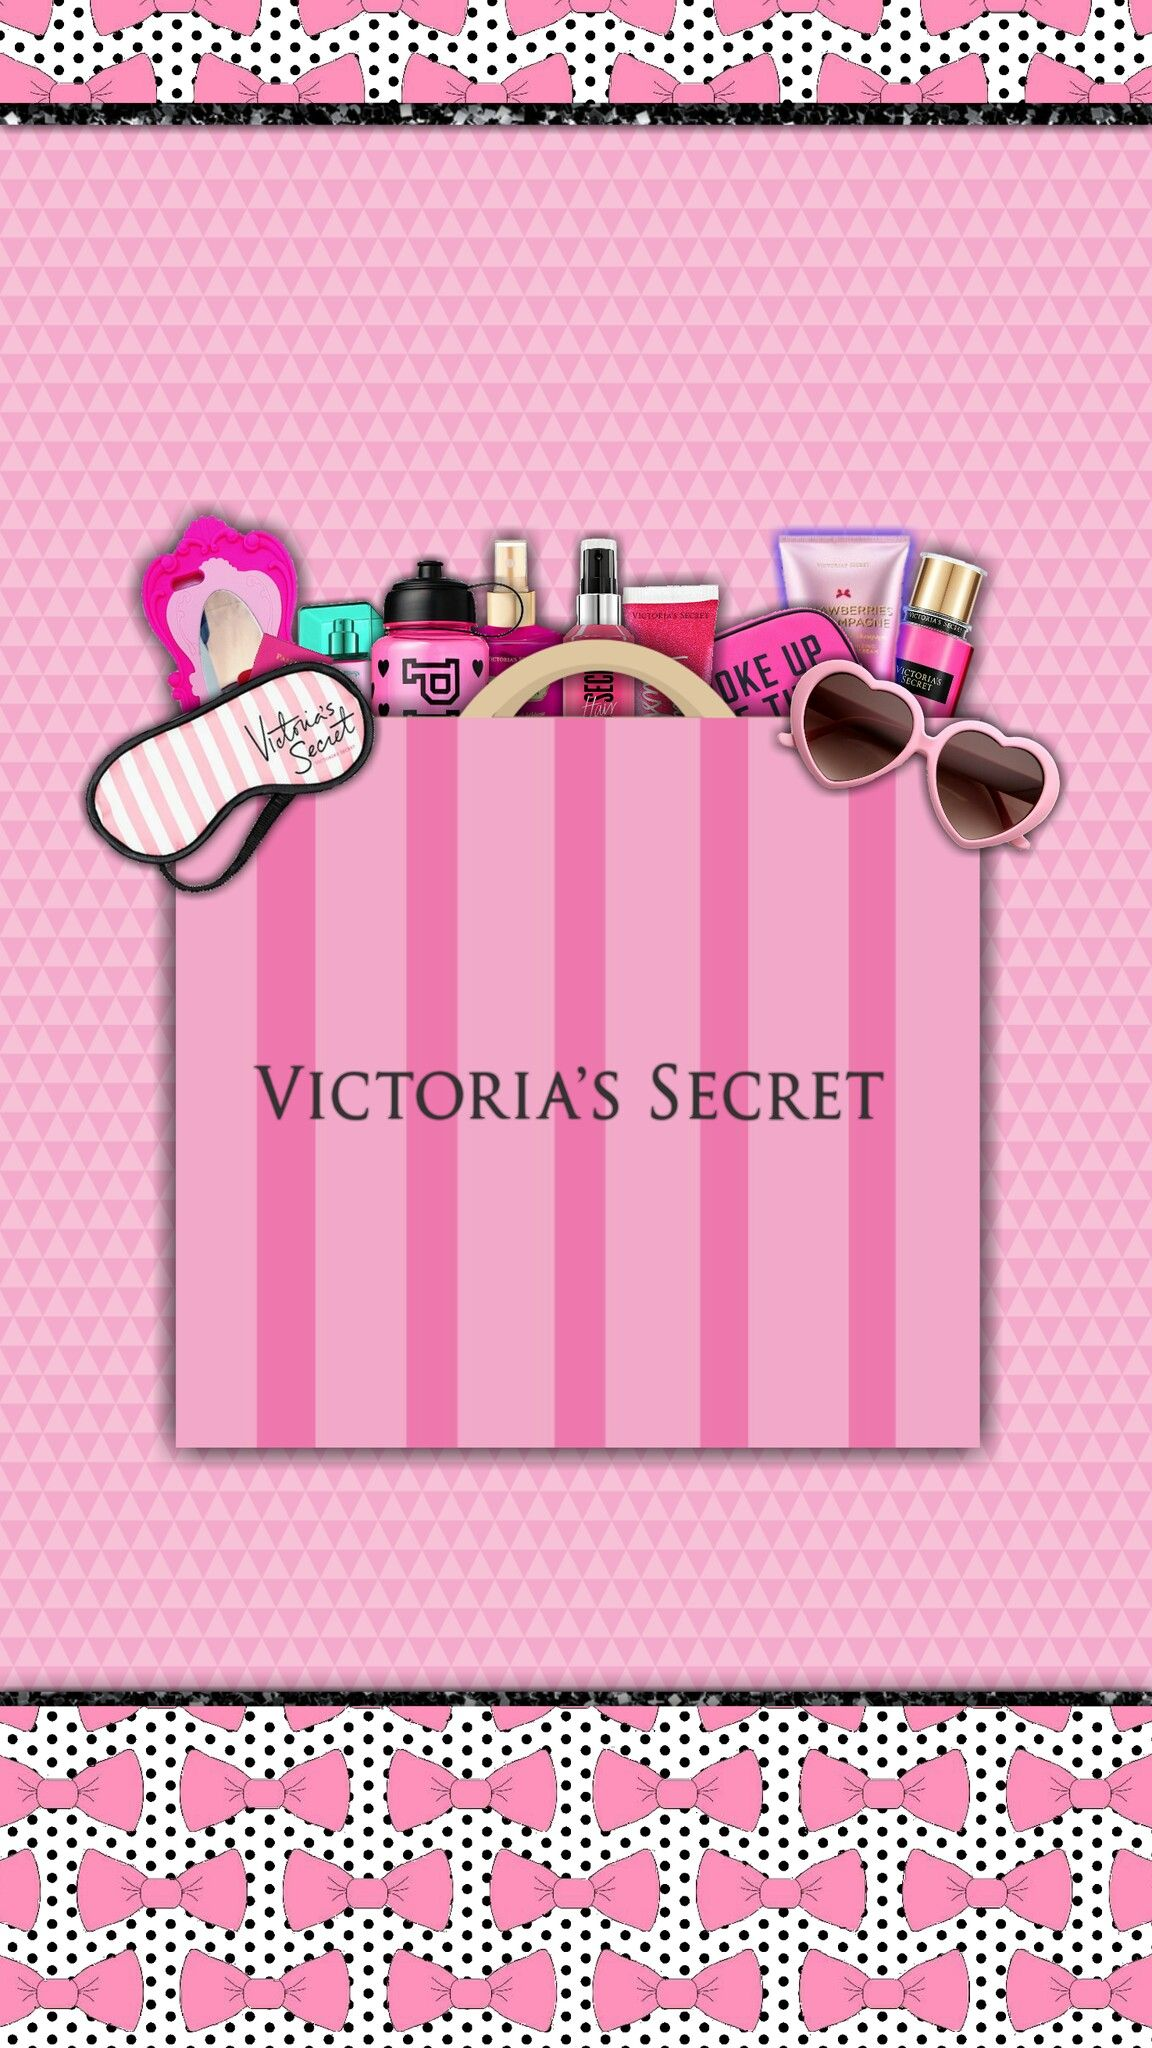 Pin By Annie On Wall Victoria Secret Pink Wallpaper Pink Wallpaper Iphone Victoria Secret Wallpaper